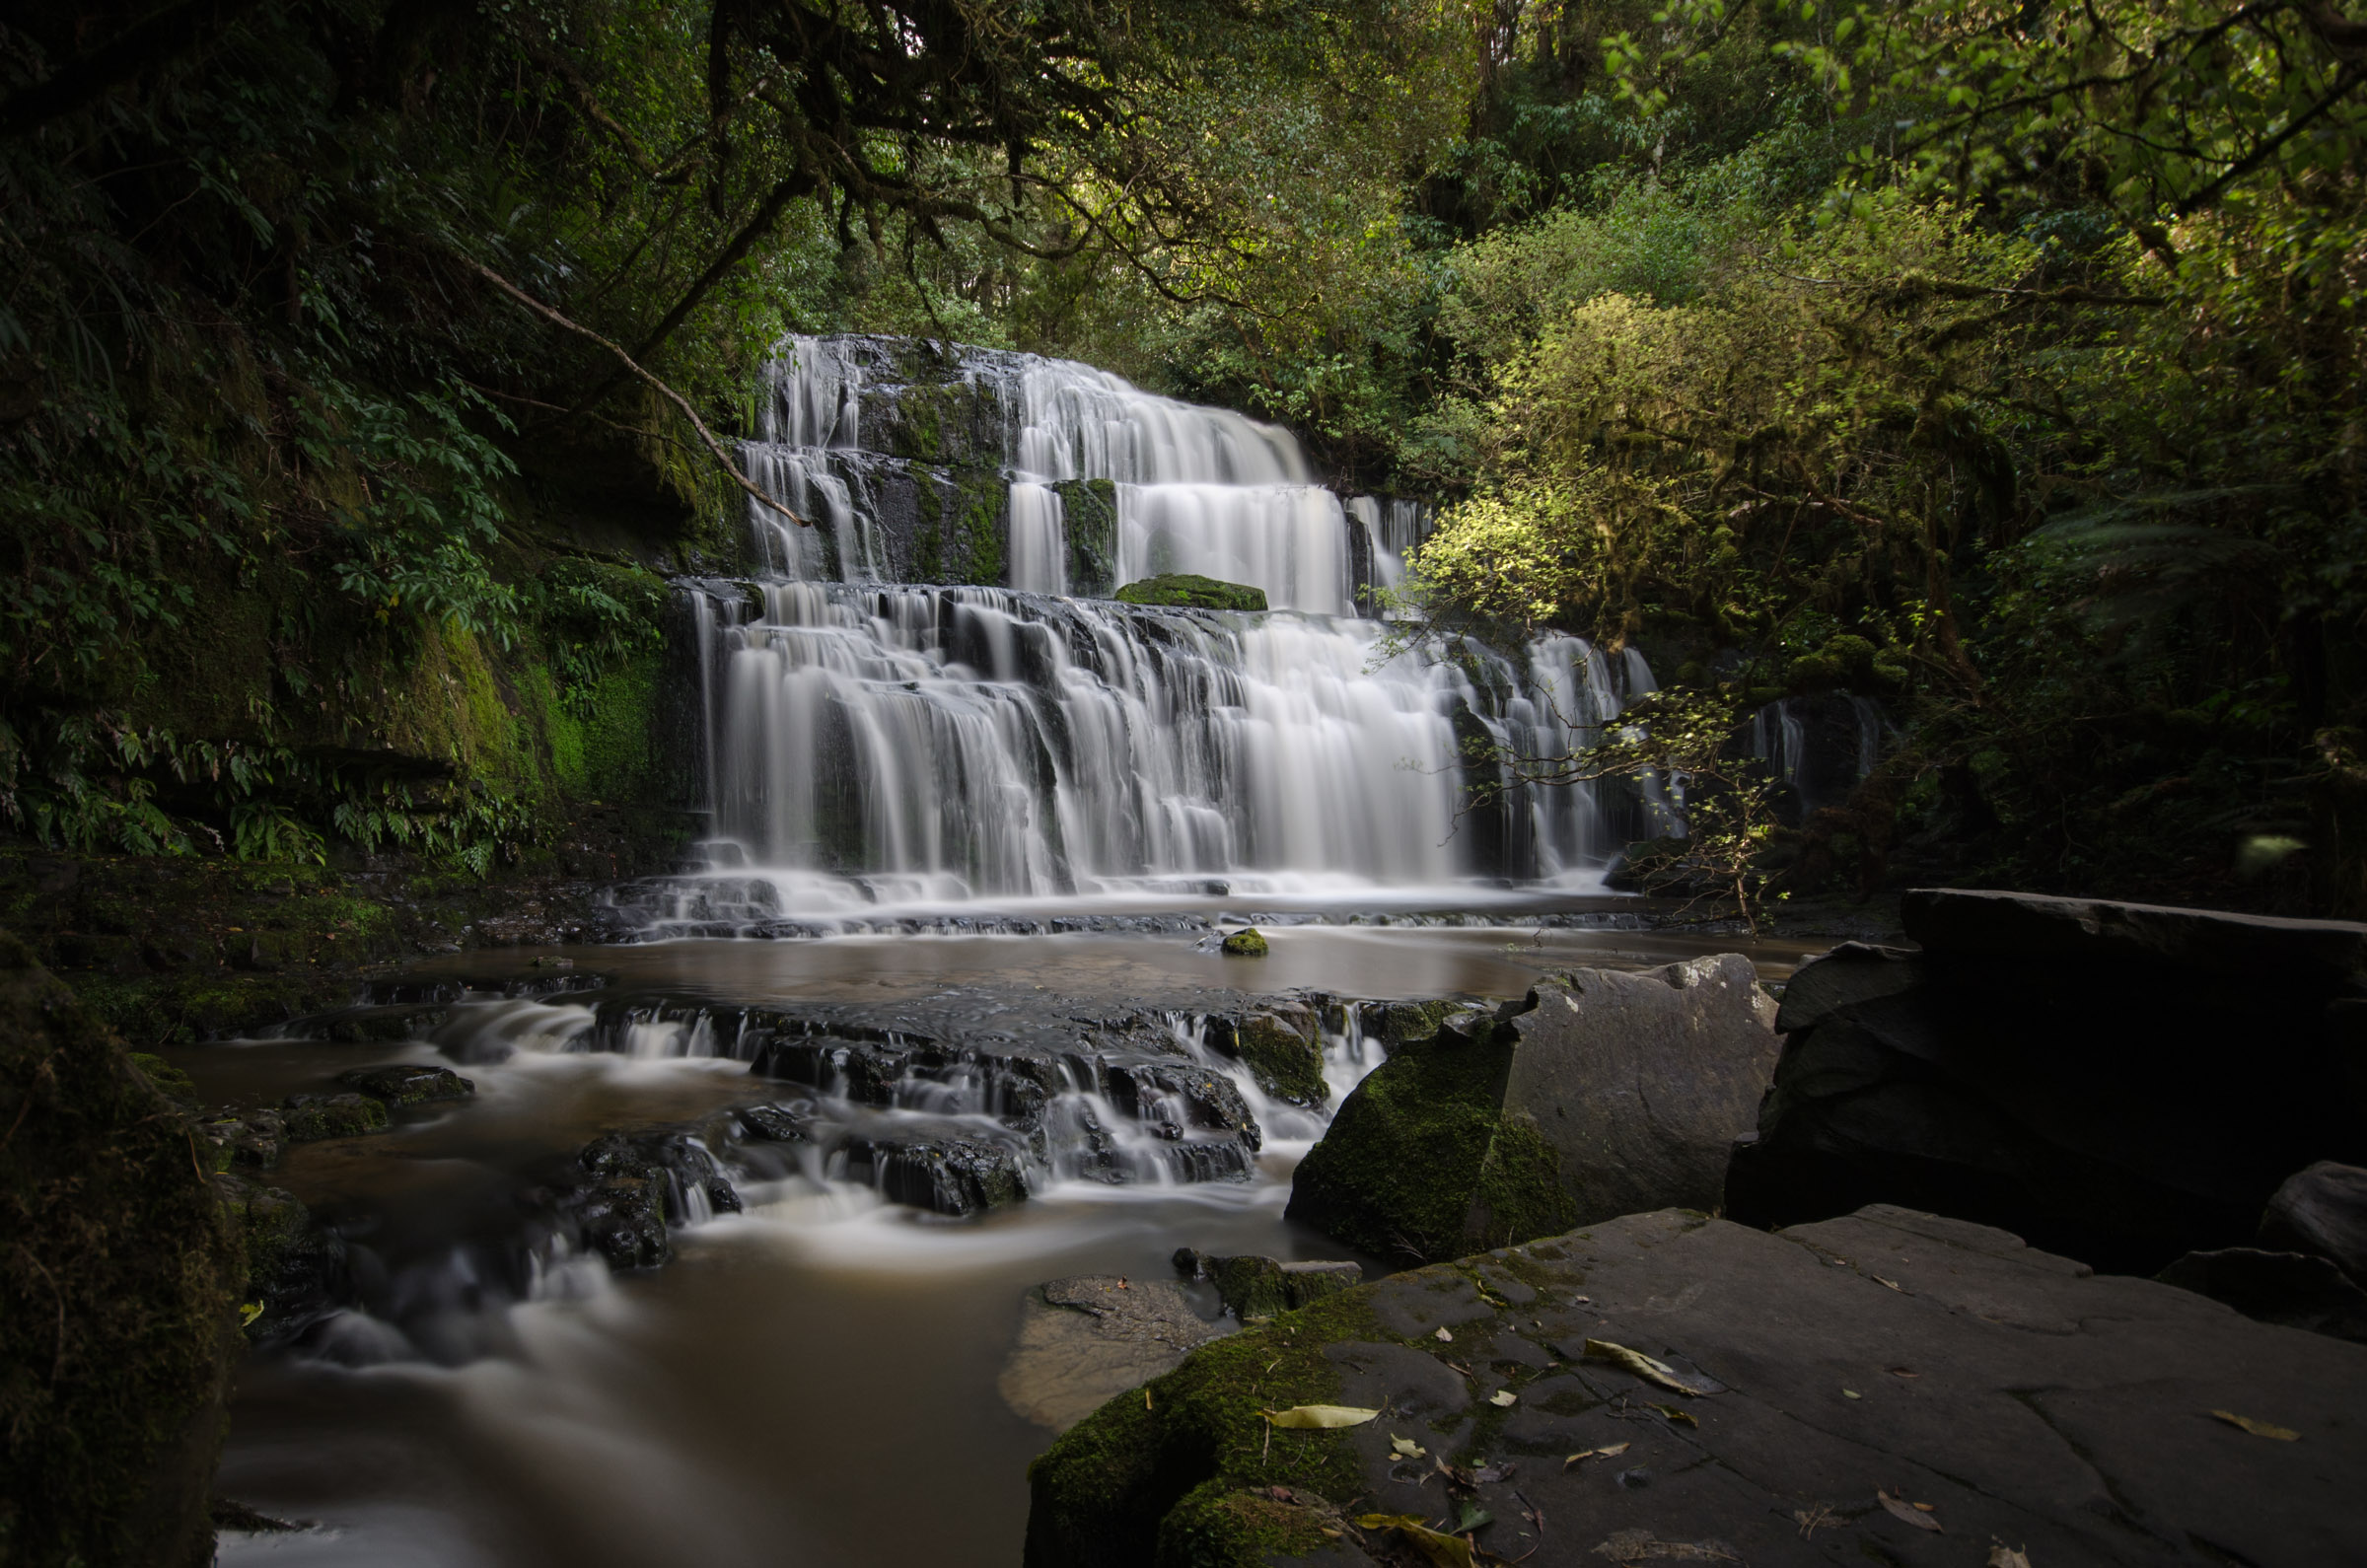 20131017_Catlins-_Timo_075